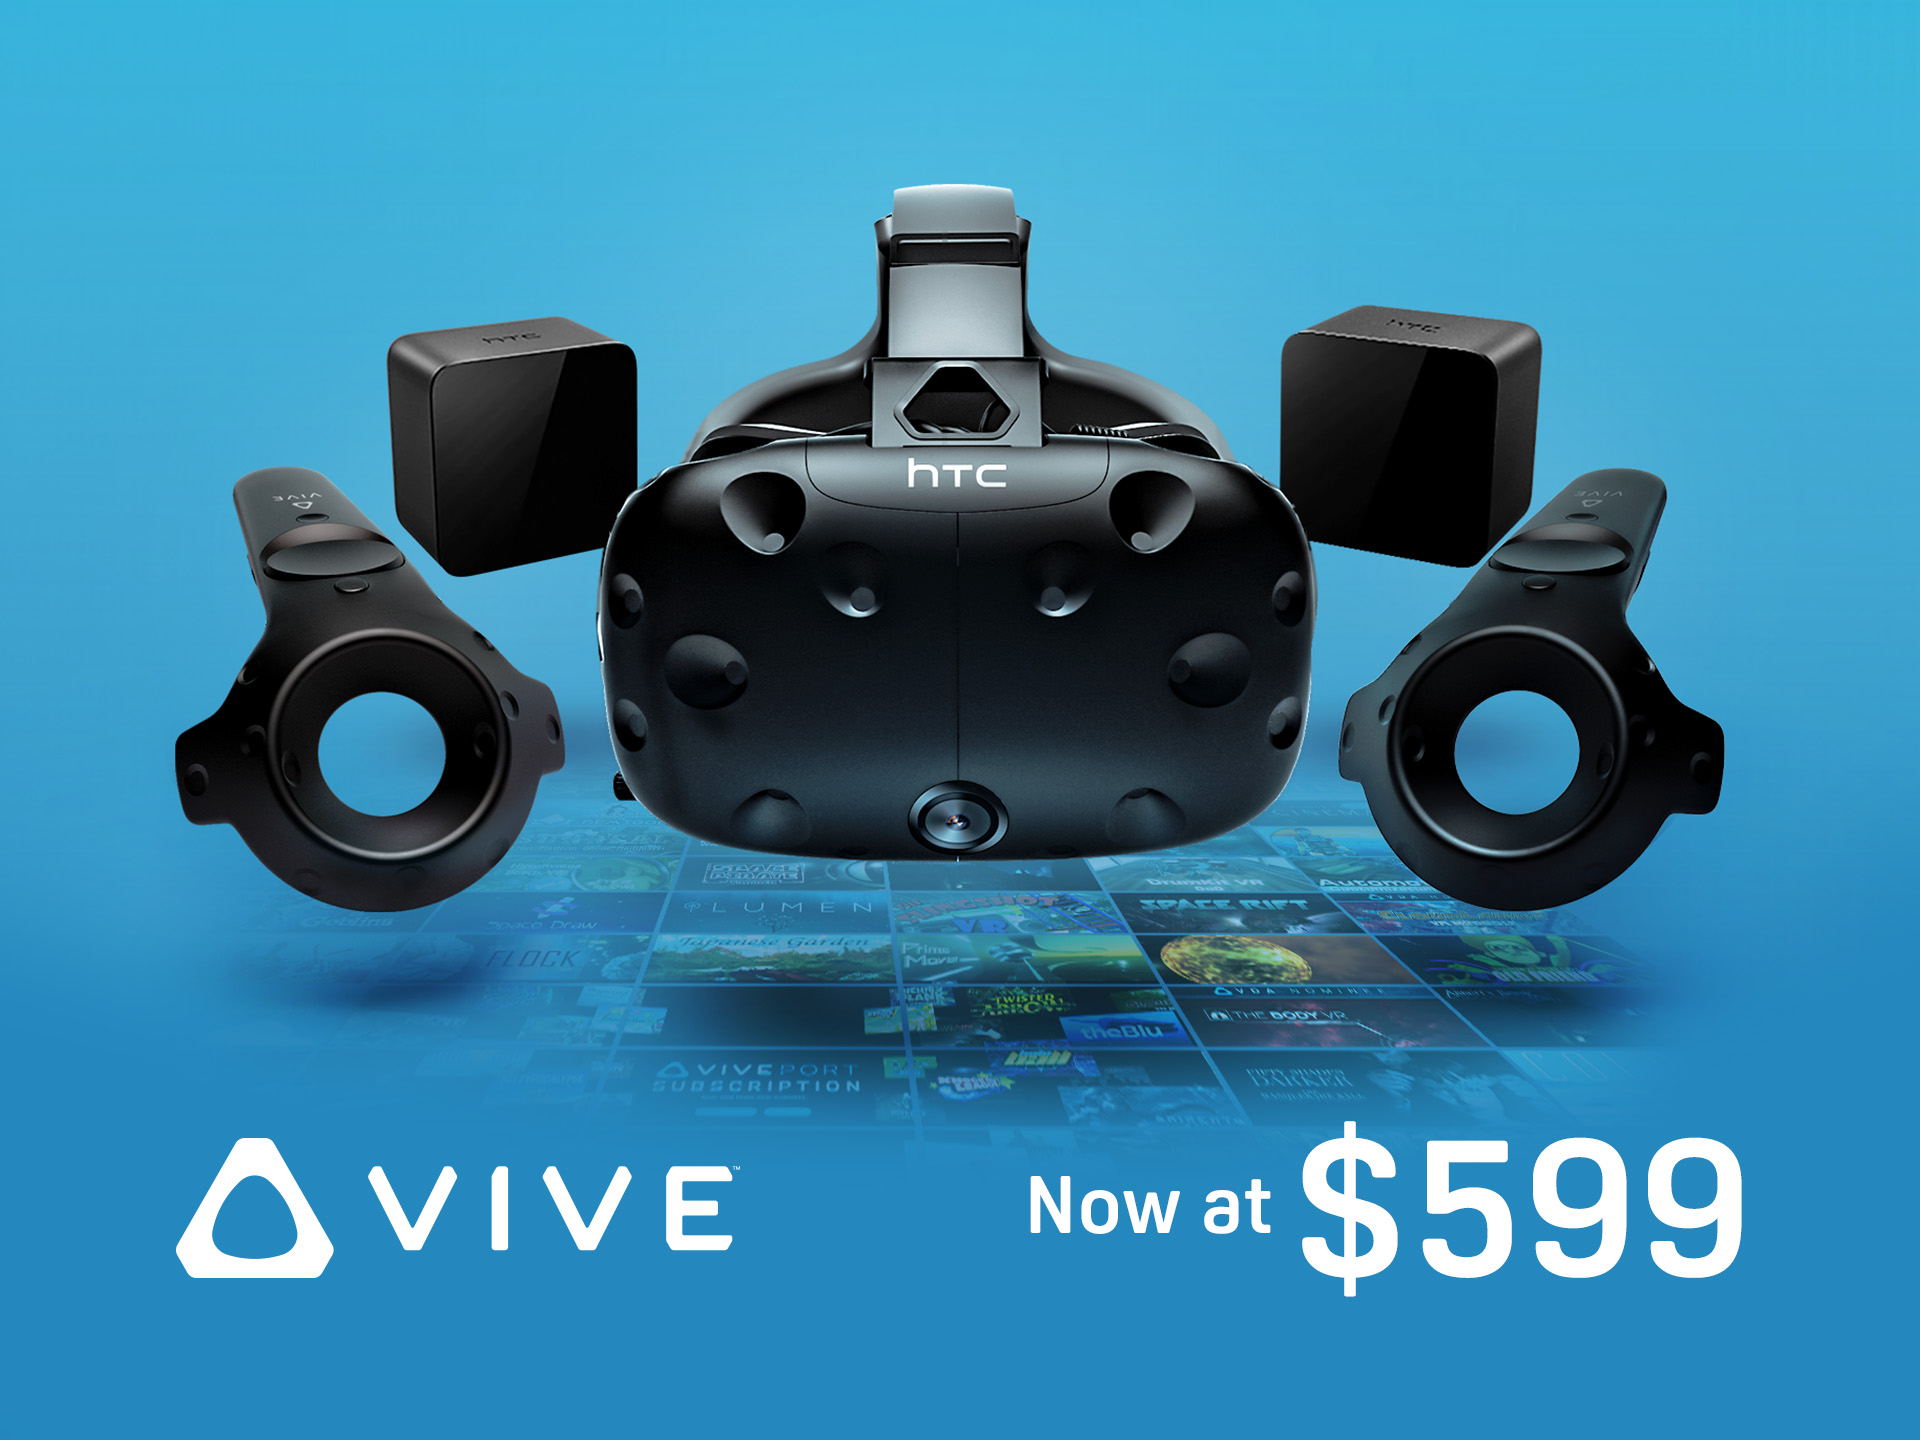 HTC lowers Vive price to compete with Facebook's Oculus